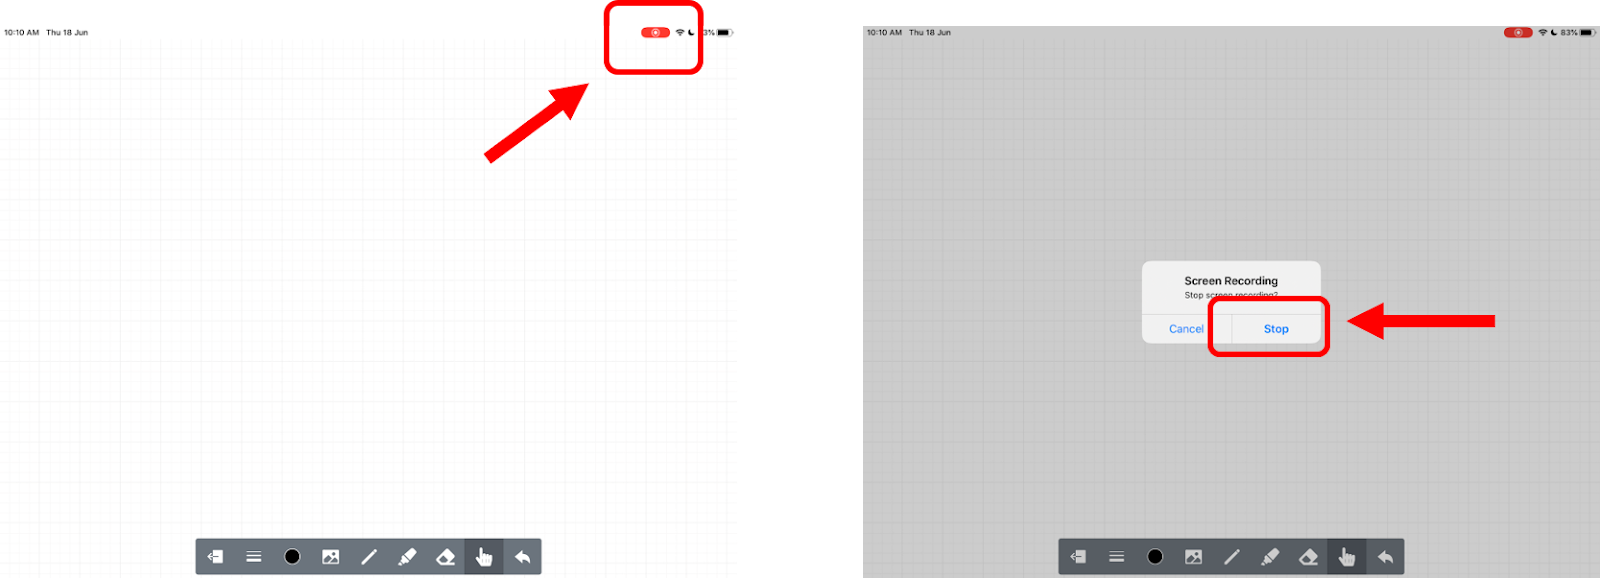 Steps to stop recording online whiteboard lesson